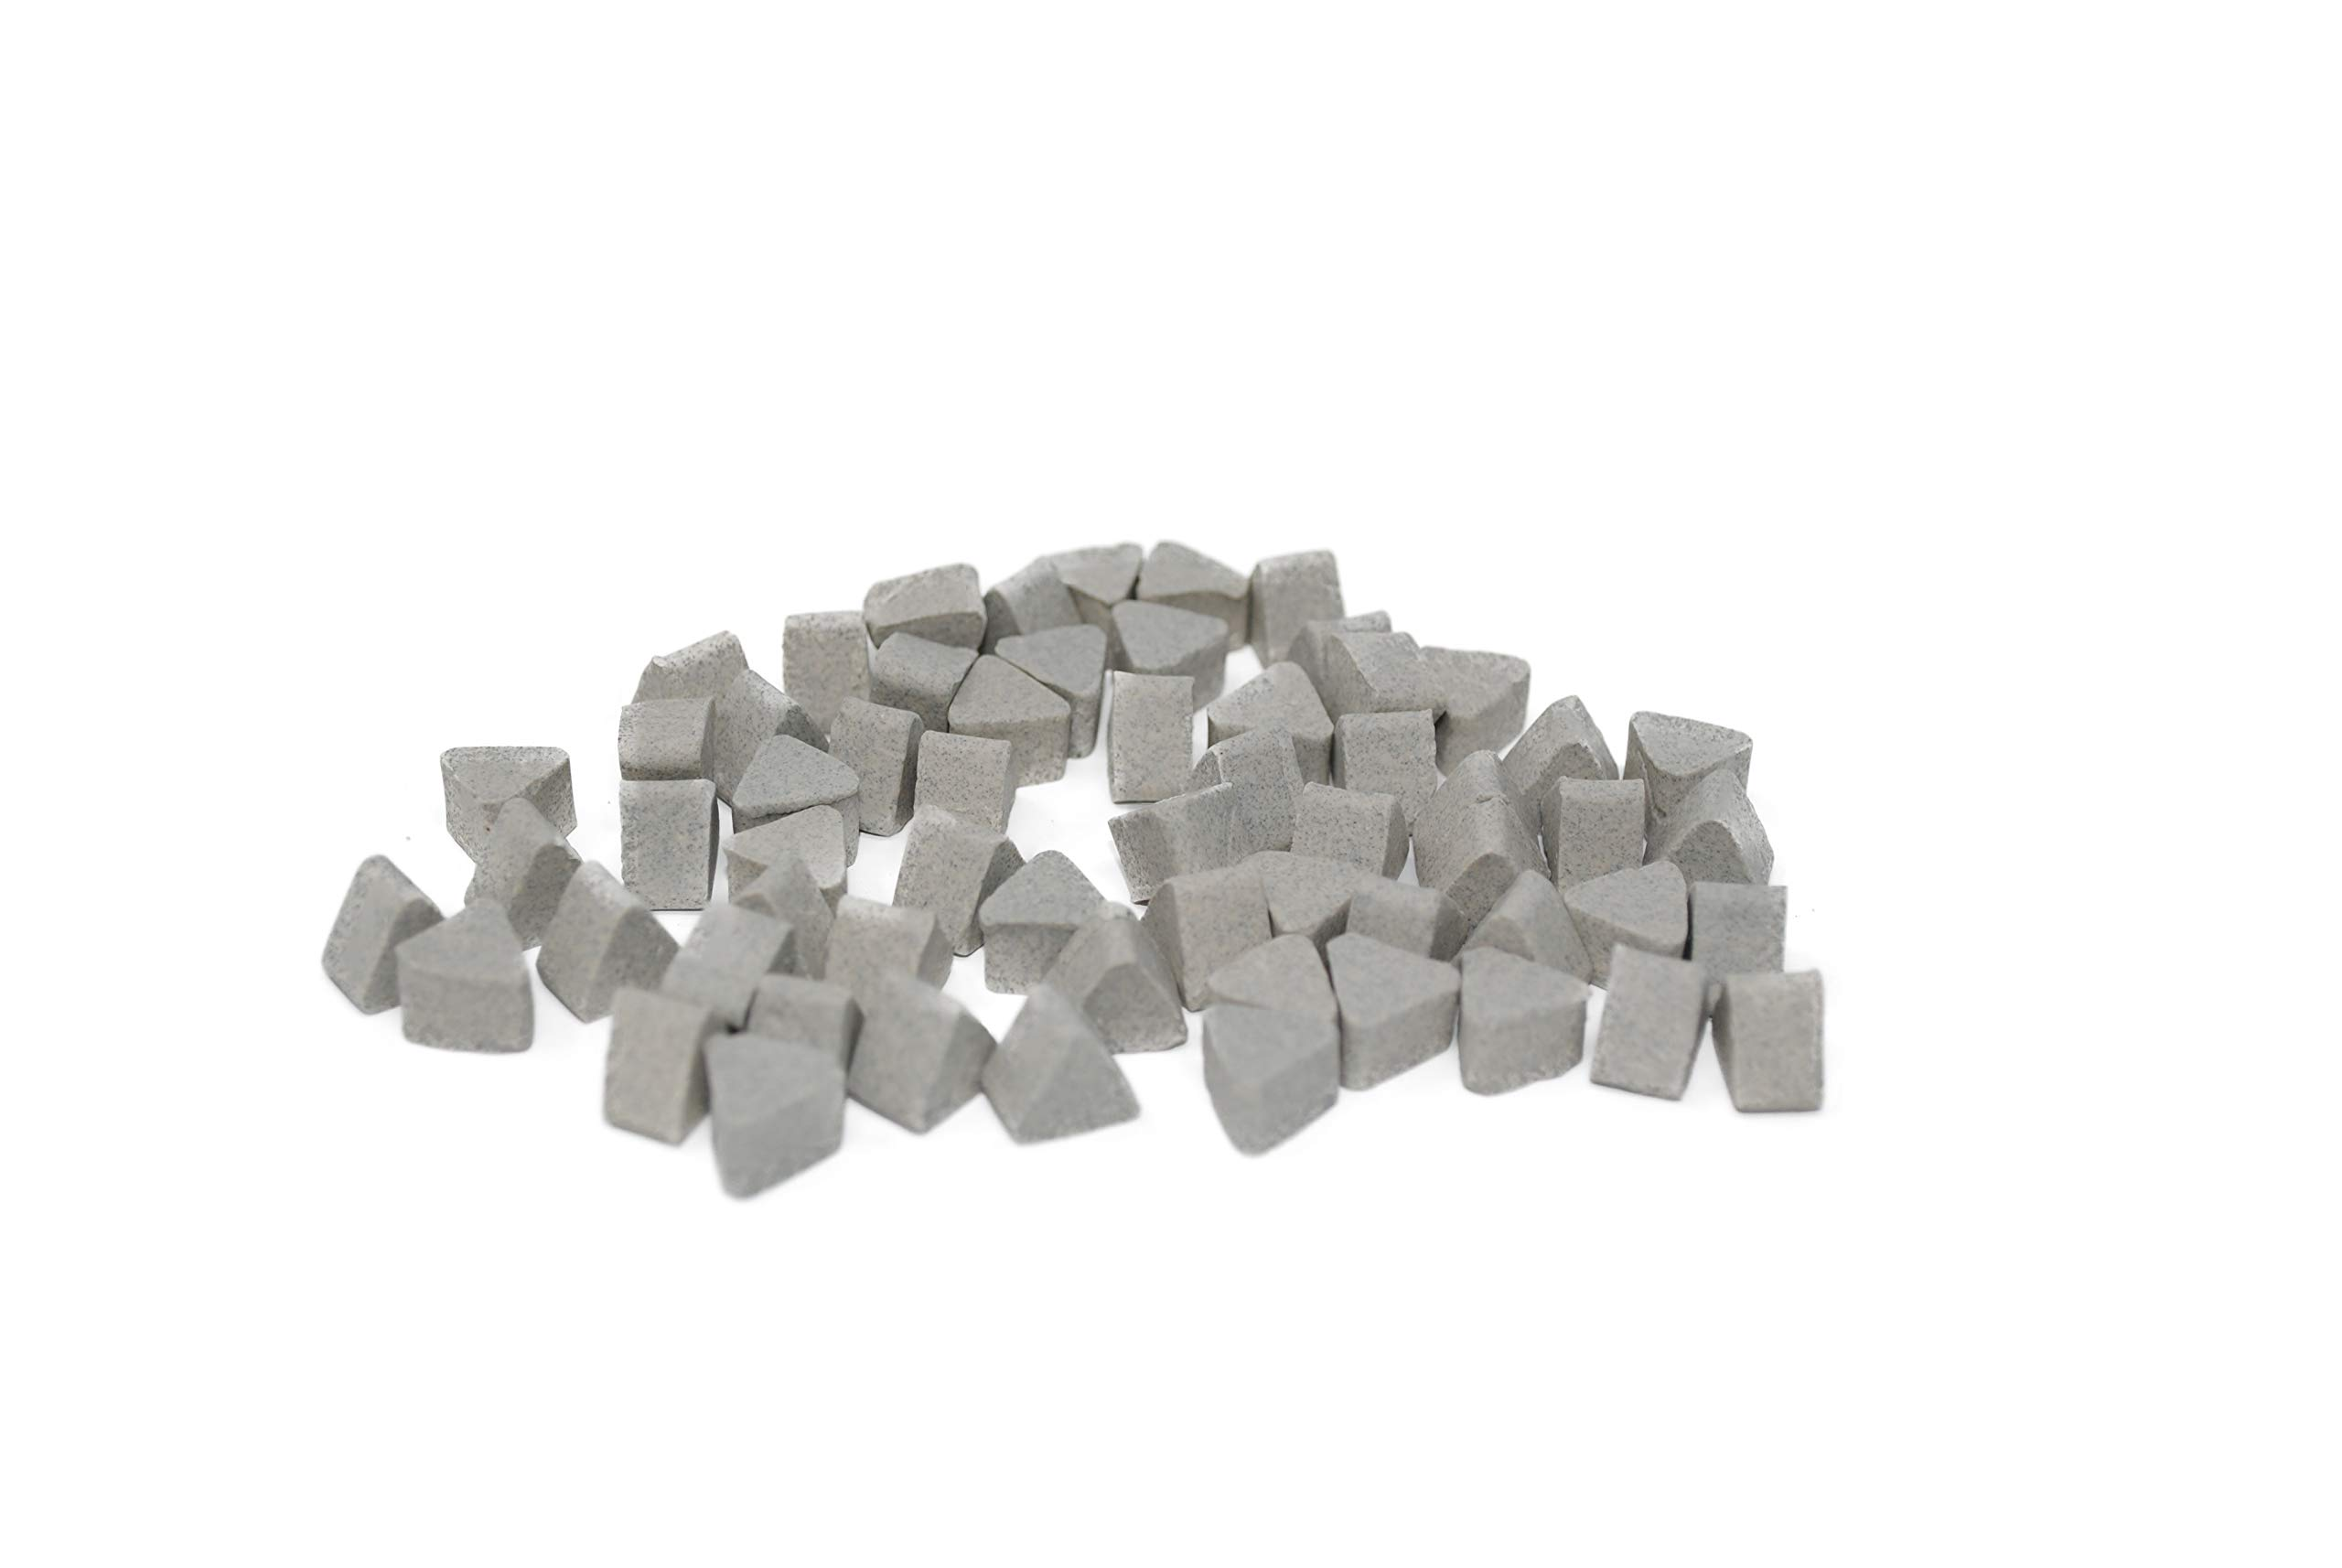 FSG 10X6, Triangle Shape, Ceramic Tumbling Rocks, 55 lb Bag, Low Cut